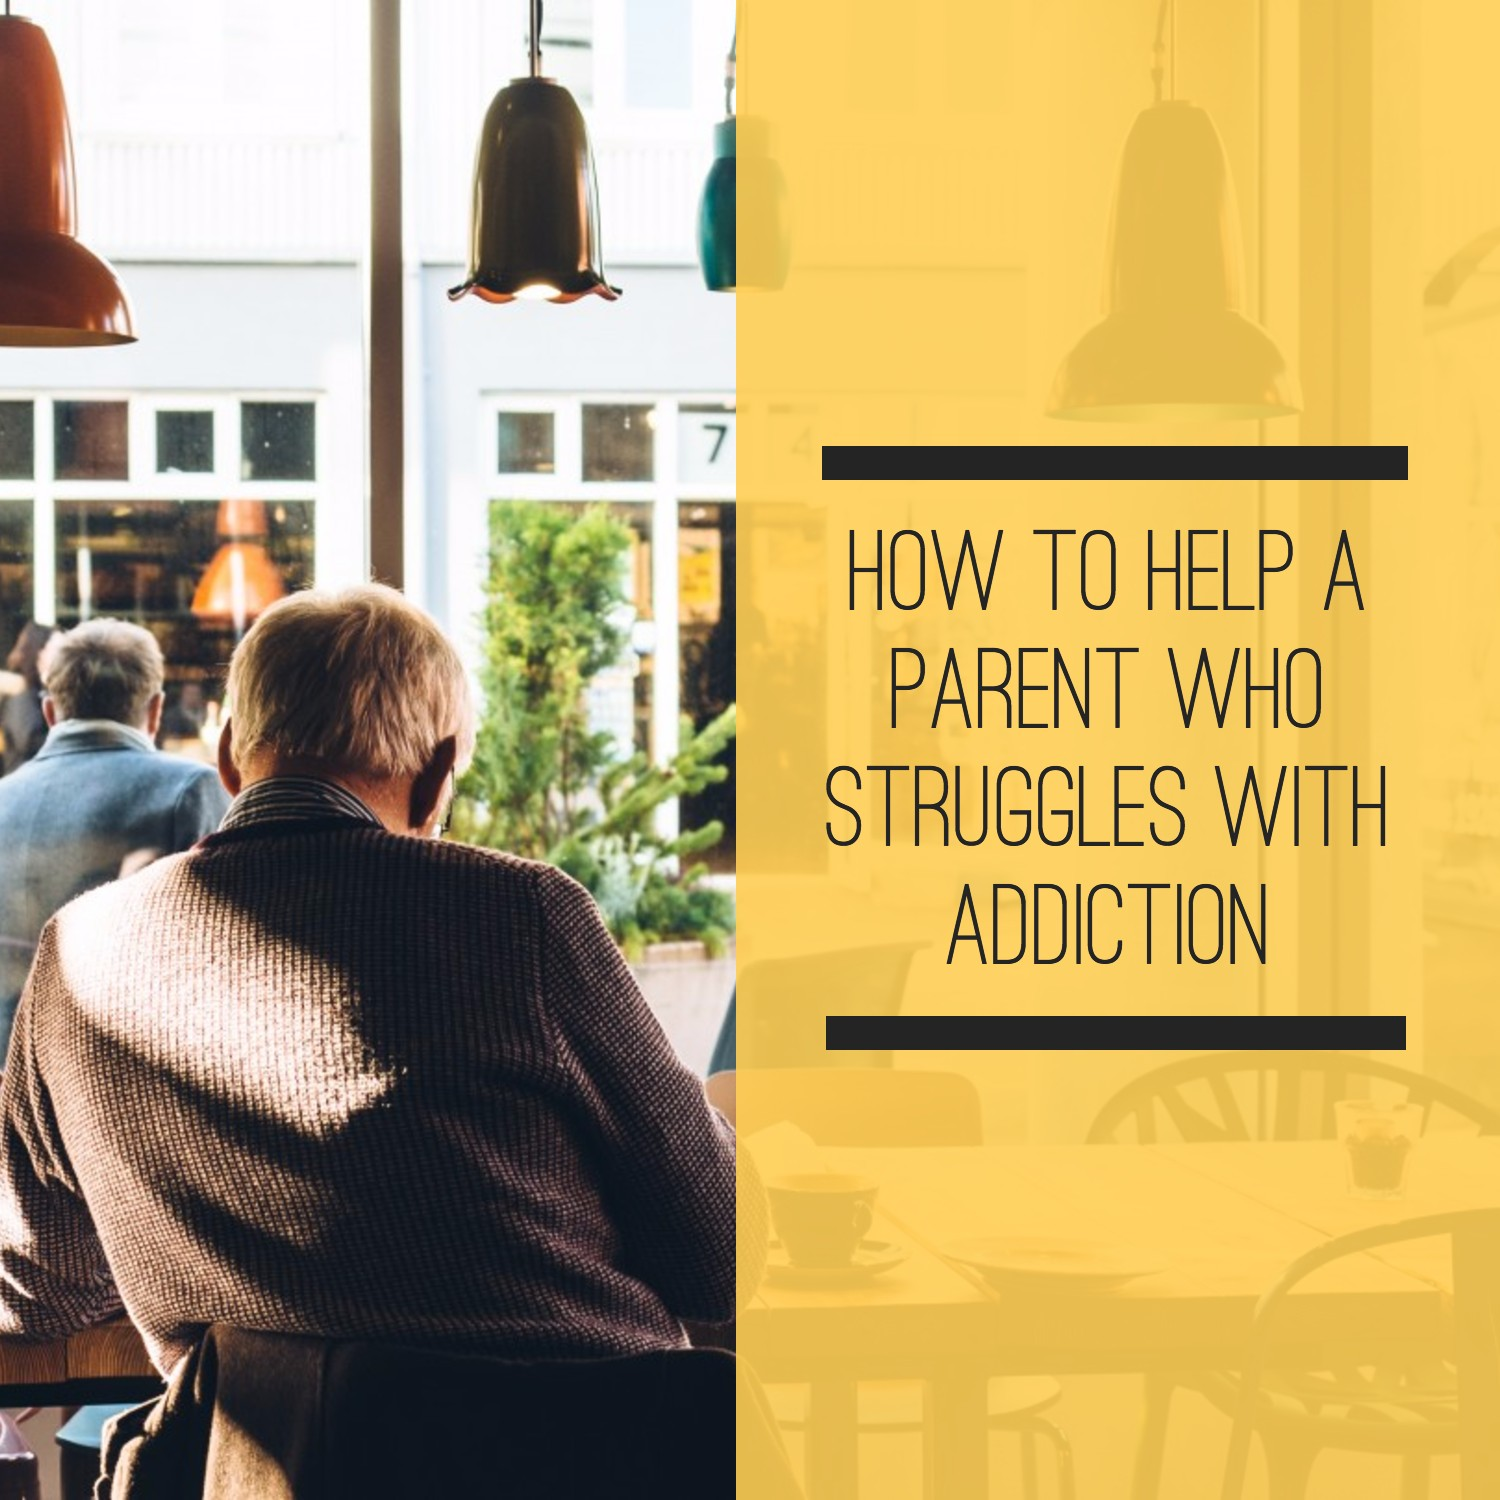 senior gentlemen sitting outside - How to help a parent who struggles with addiction